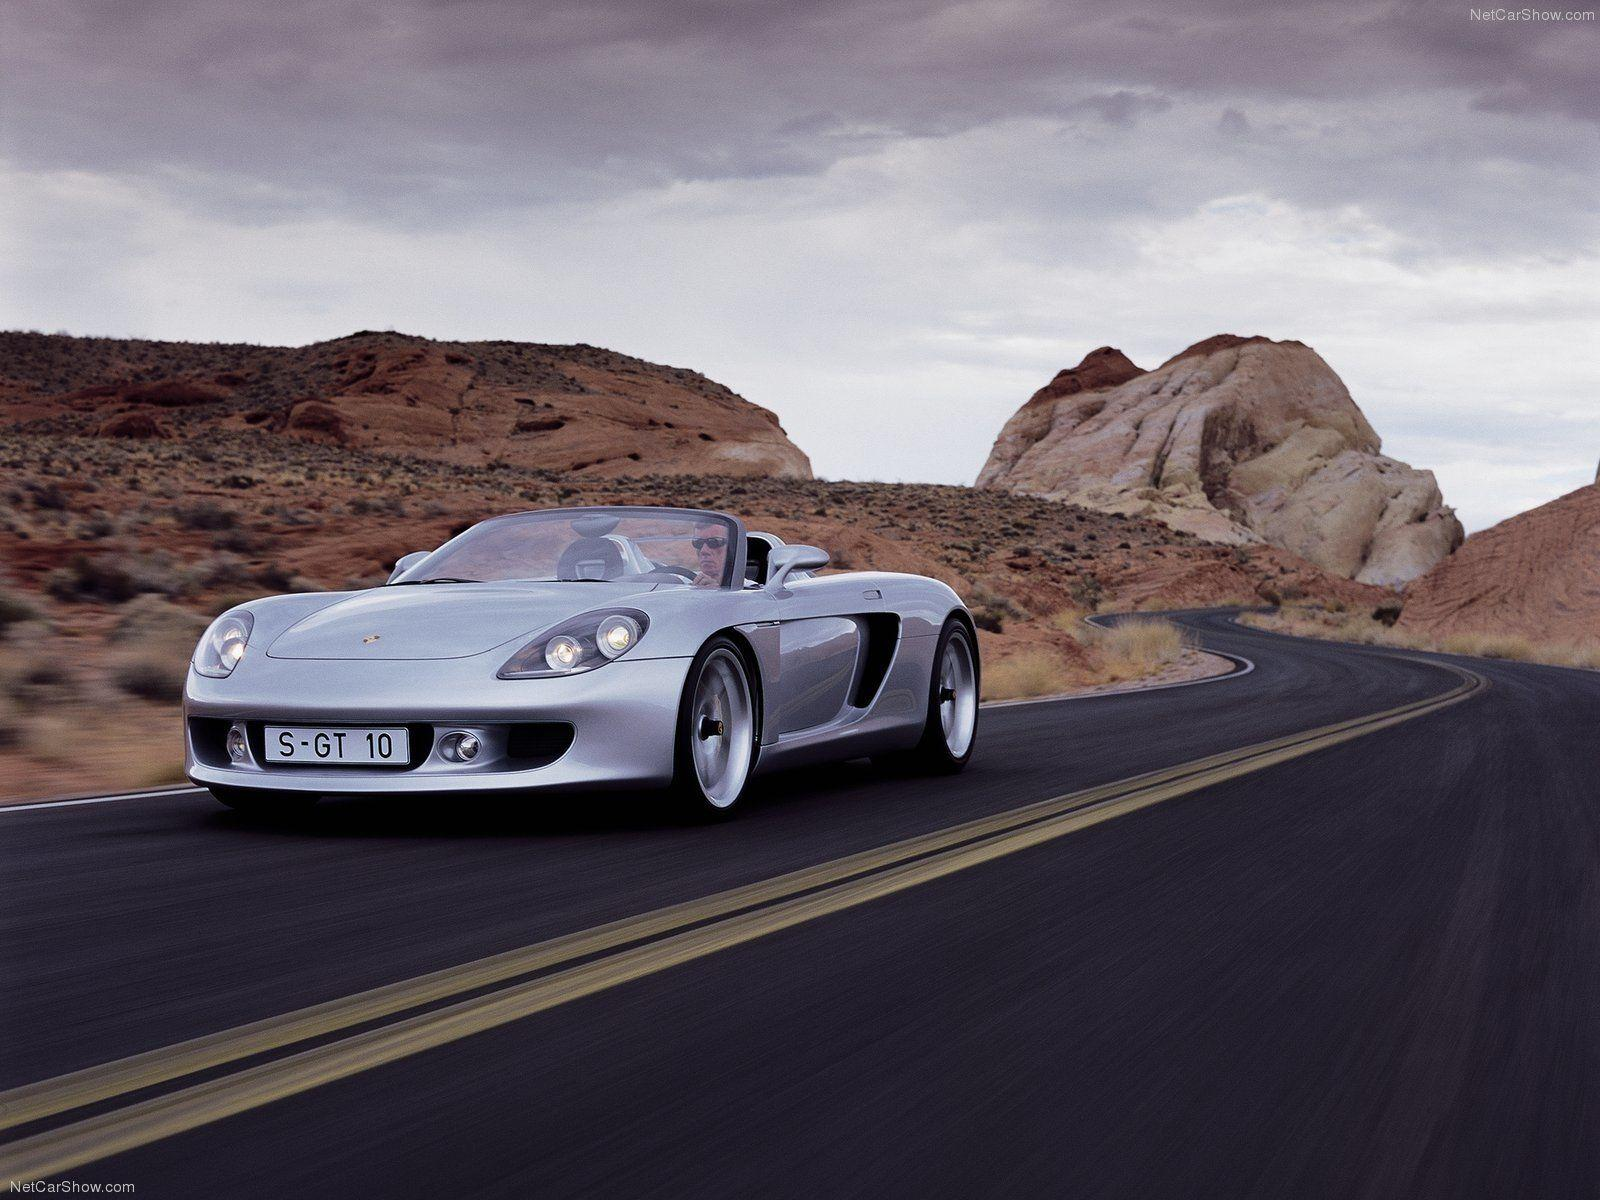 Porsche Carrera GT Wallpapers and Backgrounds Image